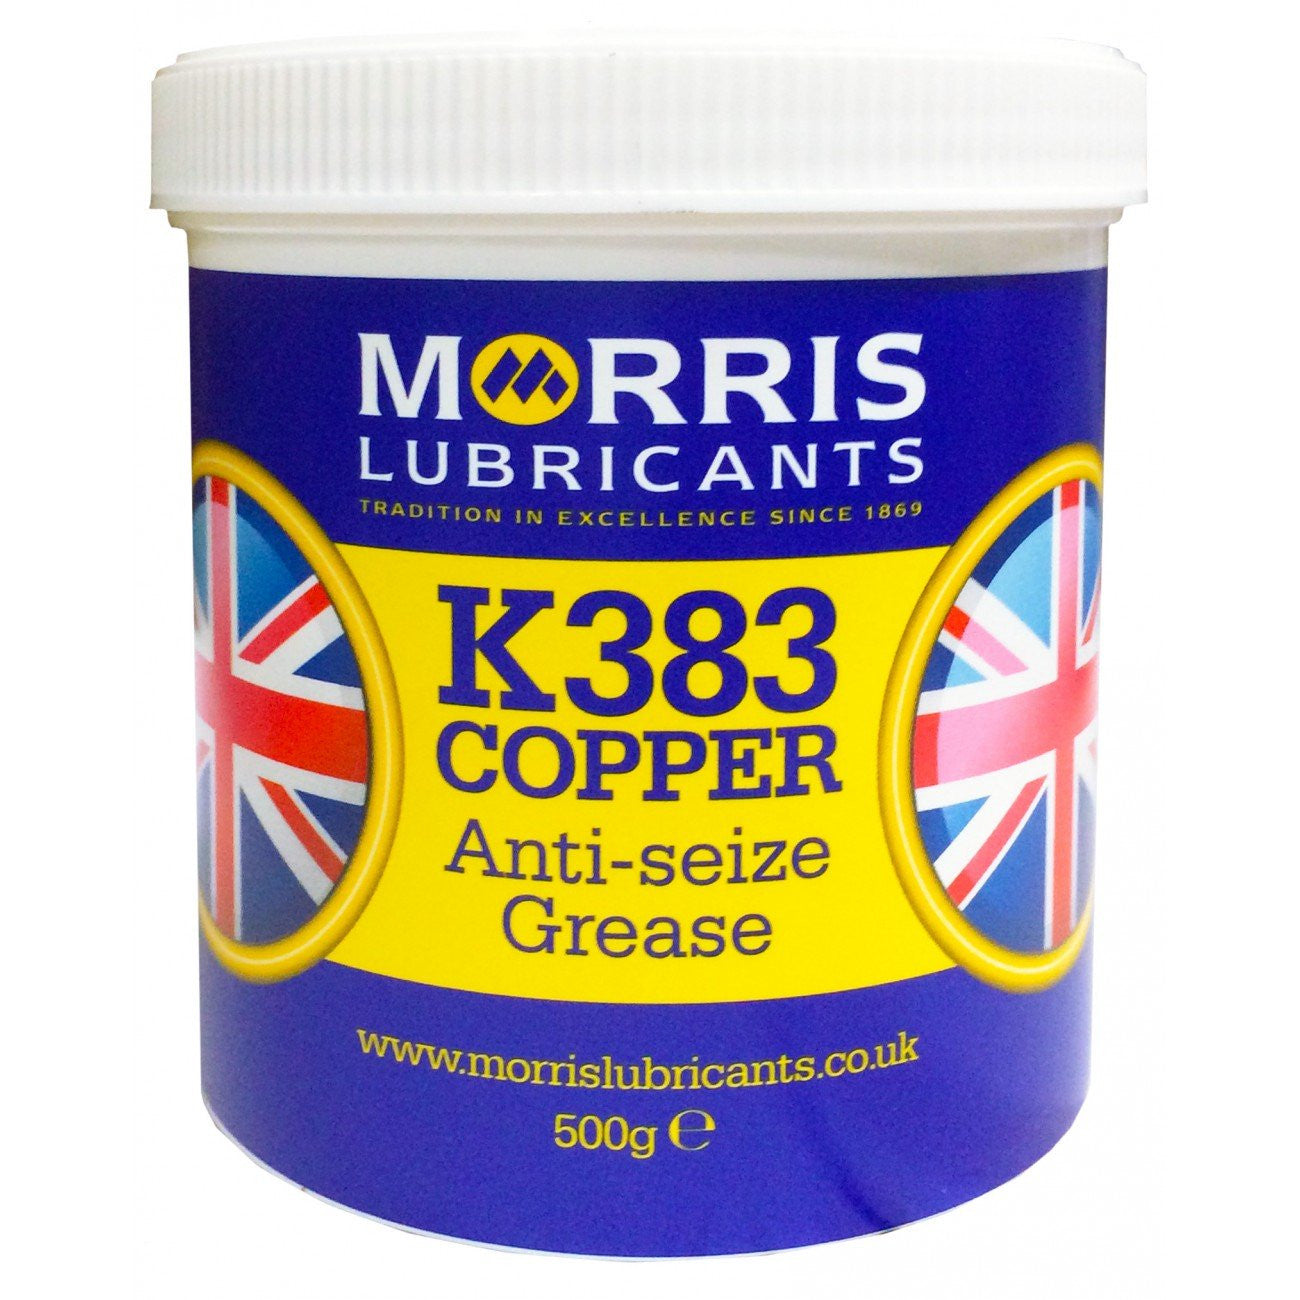 K383 Copper Grease, Grease, Morris Lubricants - Averys Motorcycles